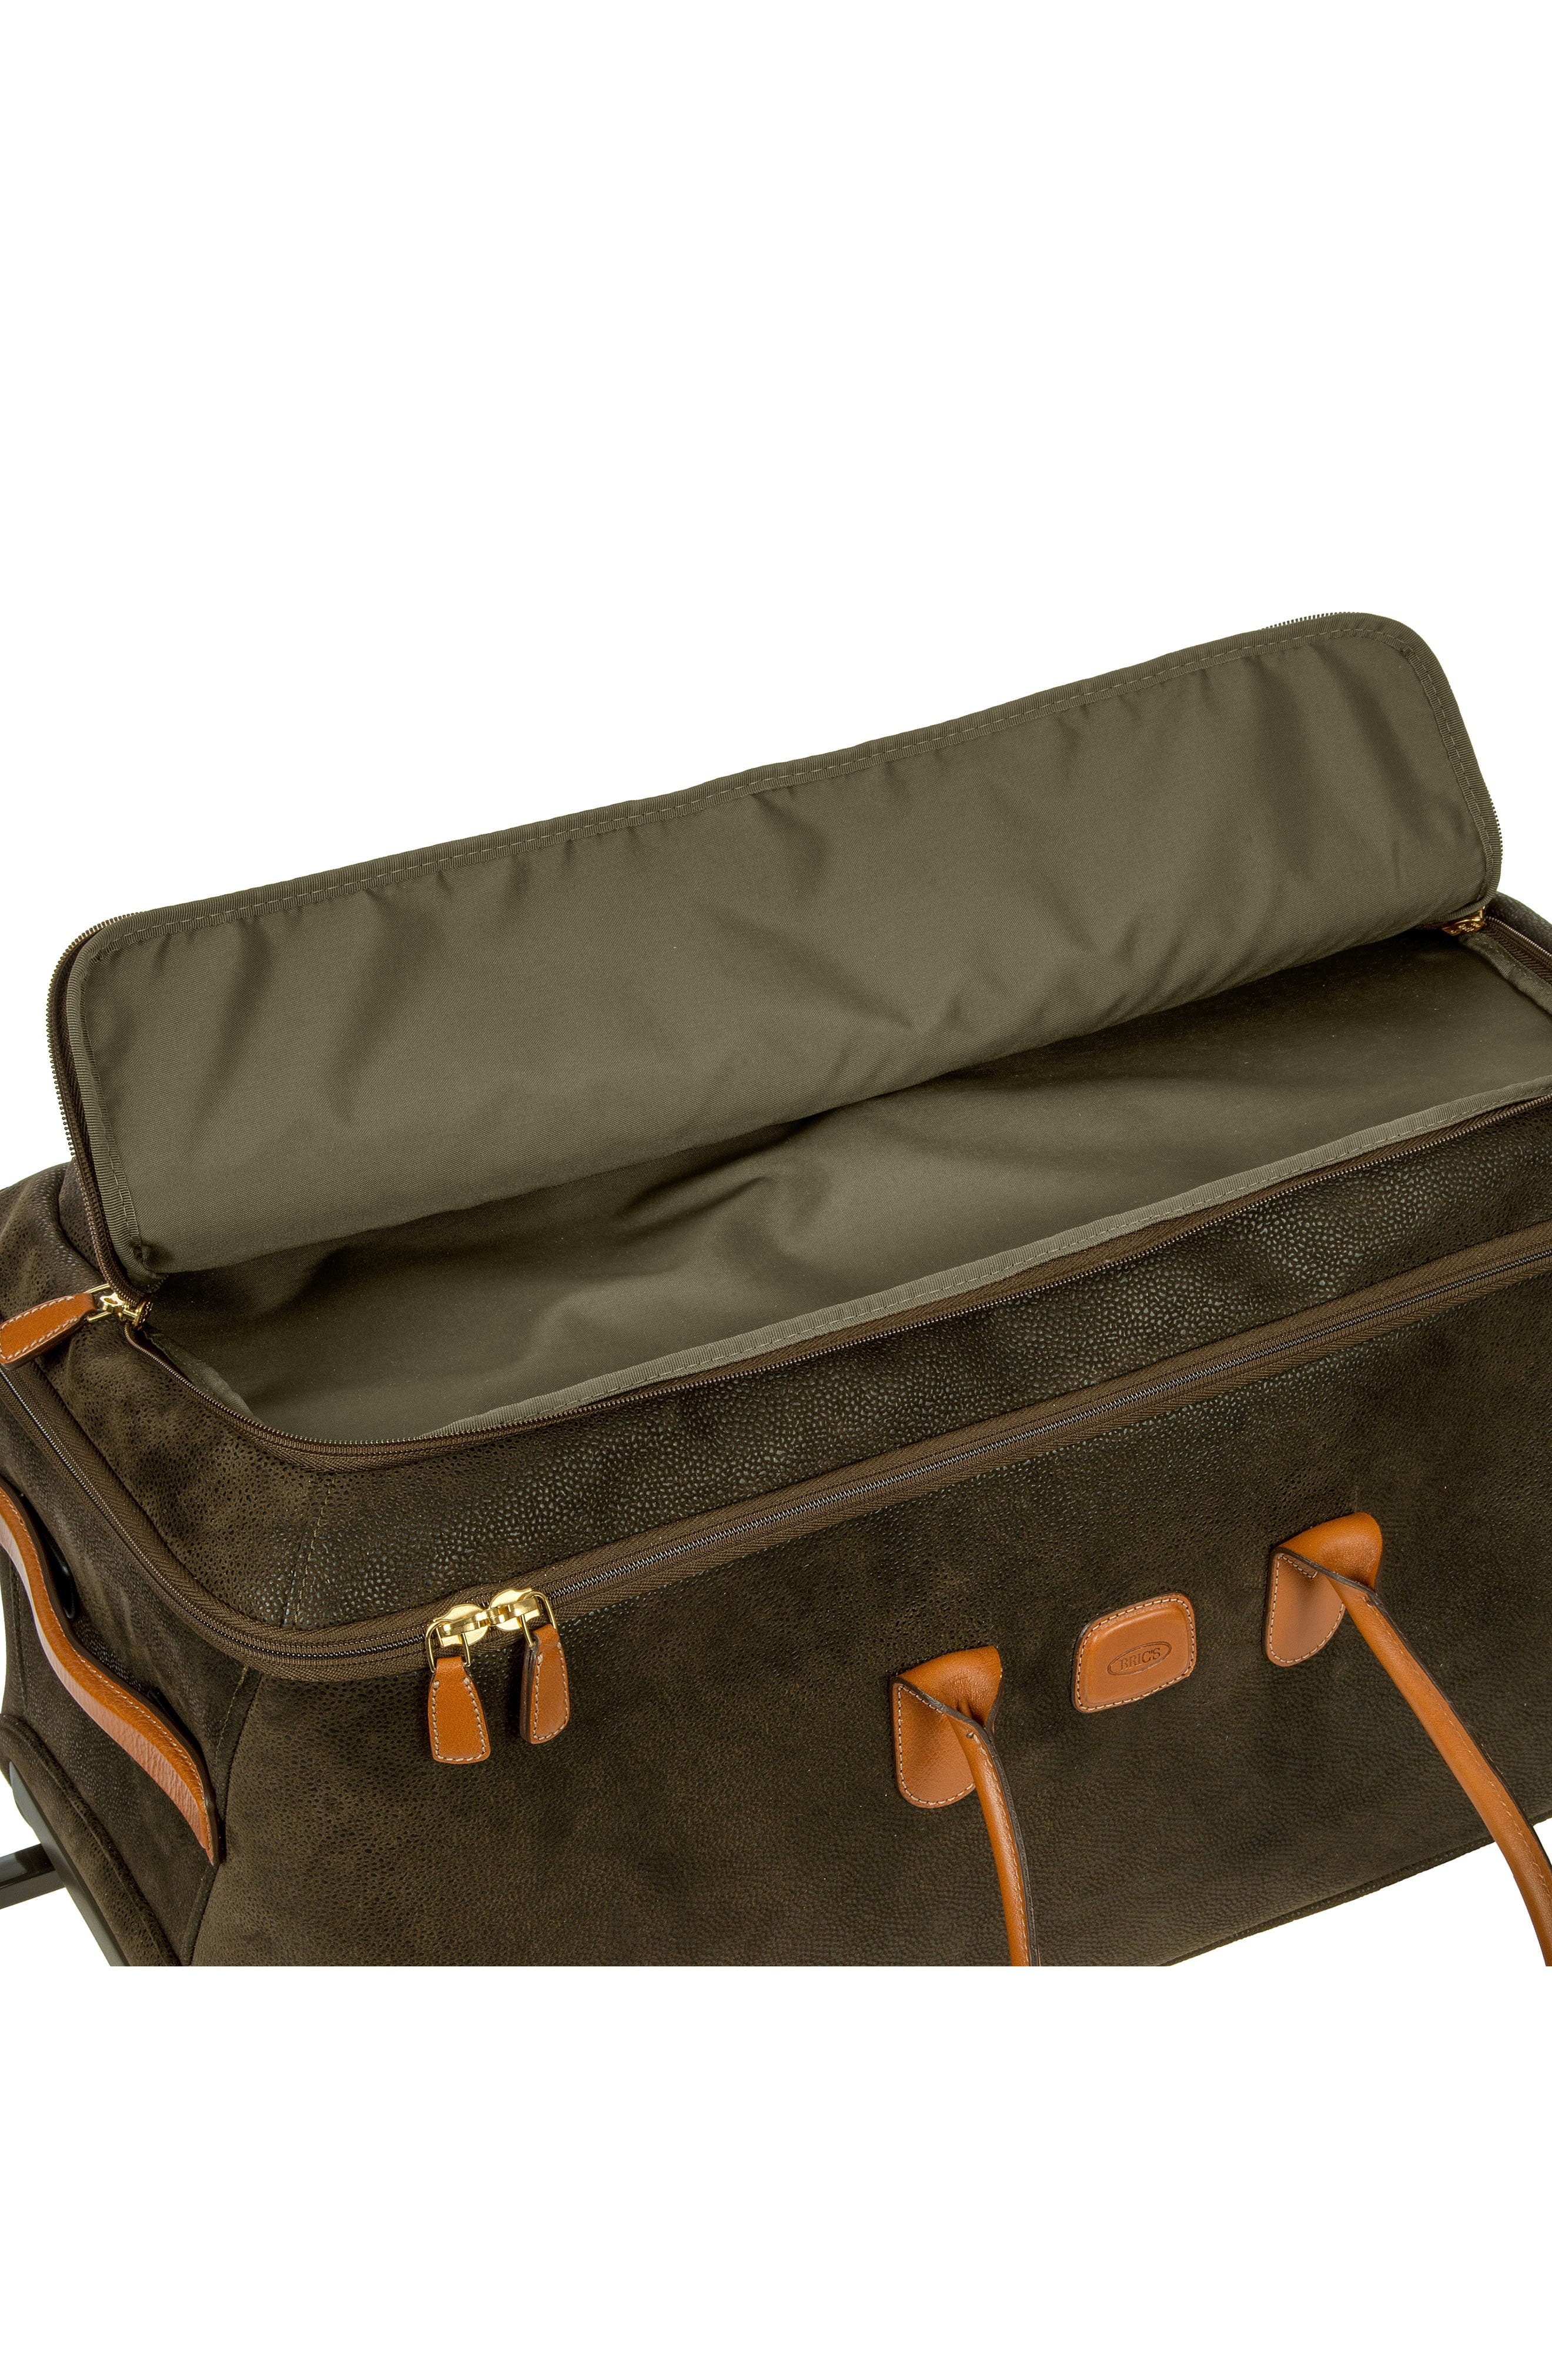 BRIC'S, Brics Life Collection 28-Inch Rolling Duffle Bag, Alternate thumbnail 4, color, OLIVE